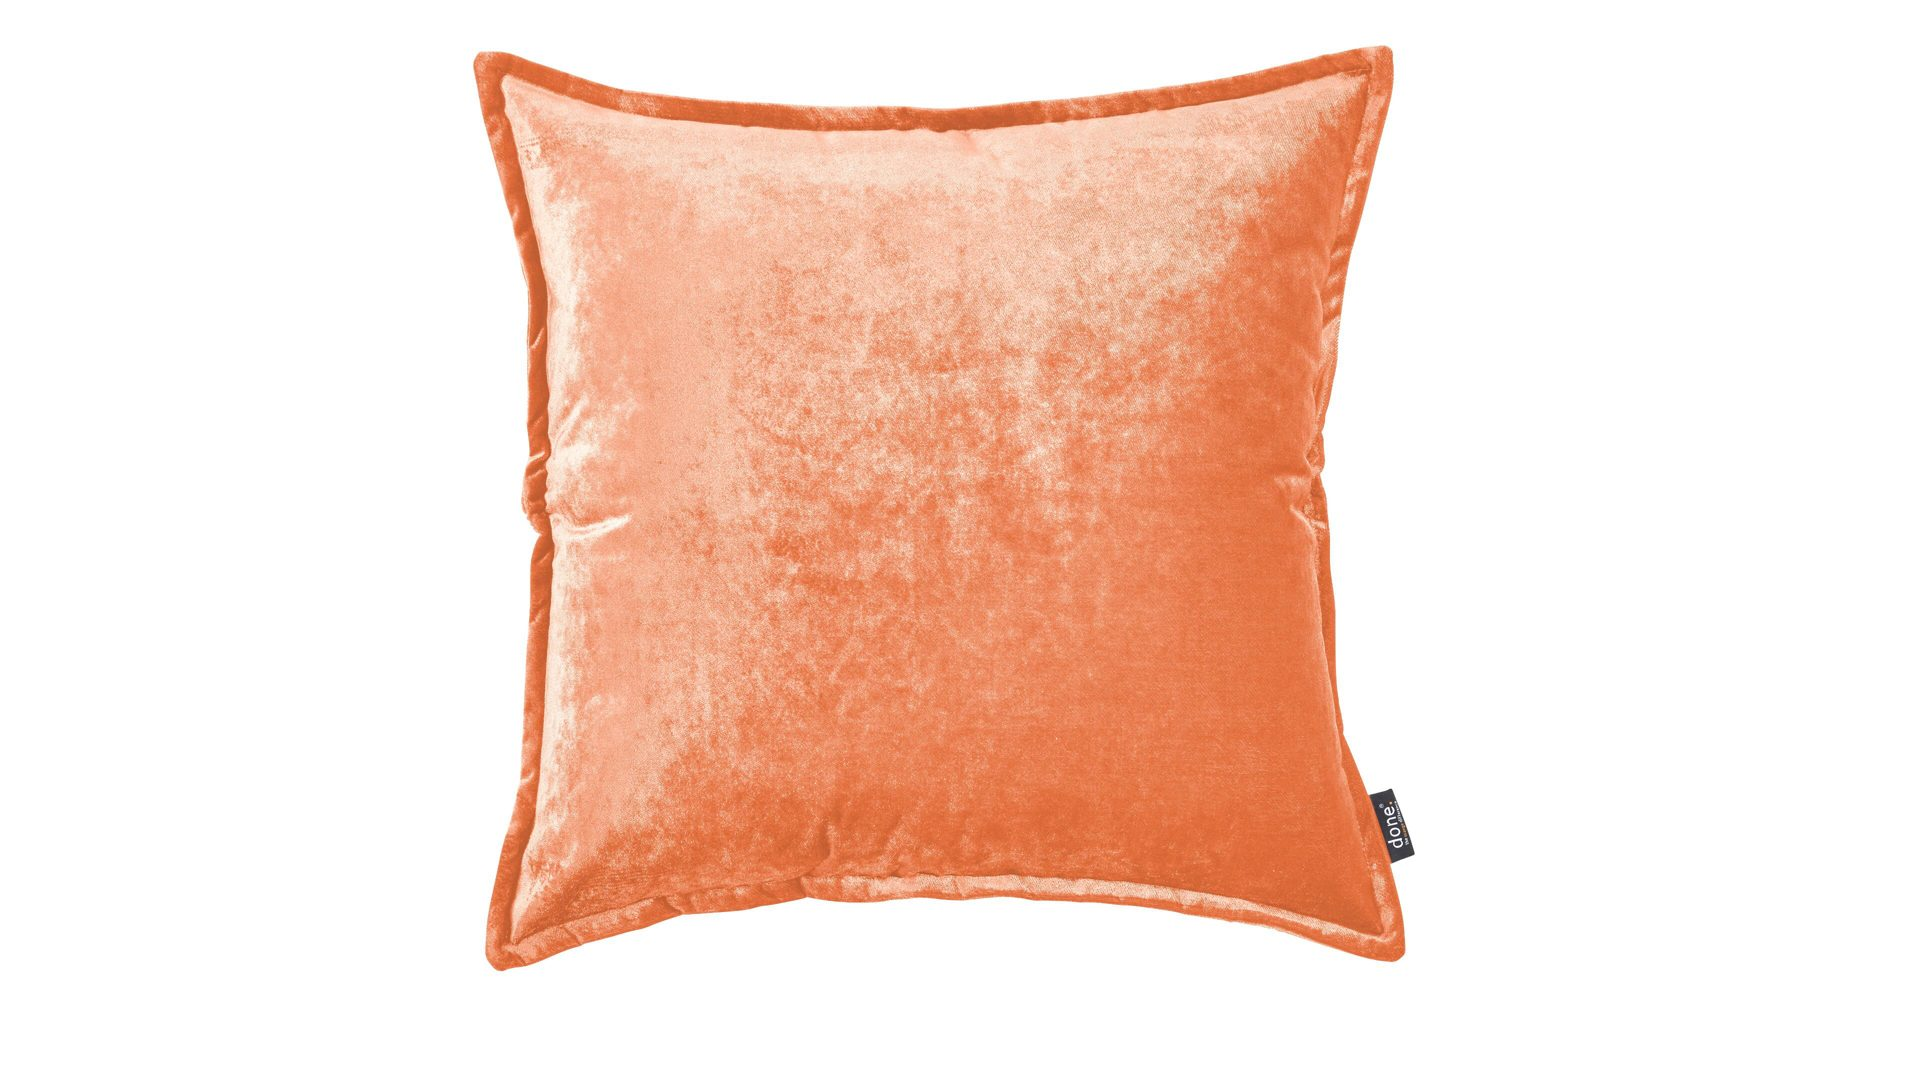 Kissenbezug Done by karabel home company aus Stoff in Orange Done Kissenhülle Cushion Glam korallenfarbener Samt – ca. 65 x 65 cm